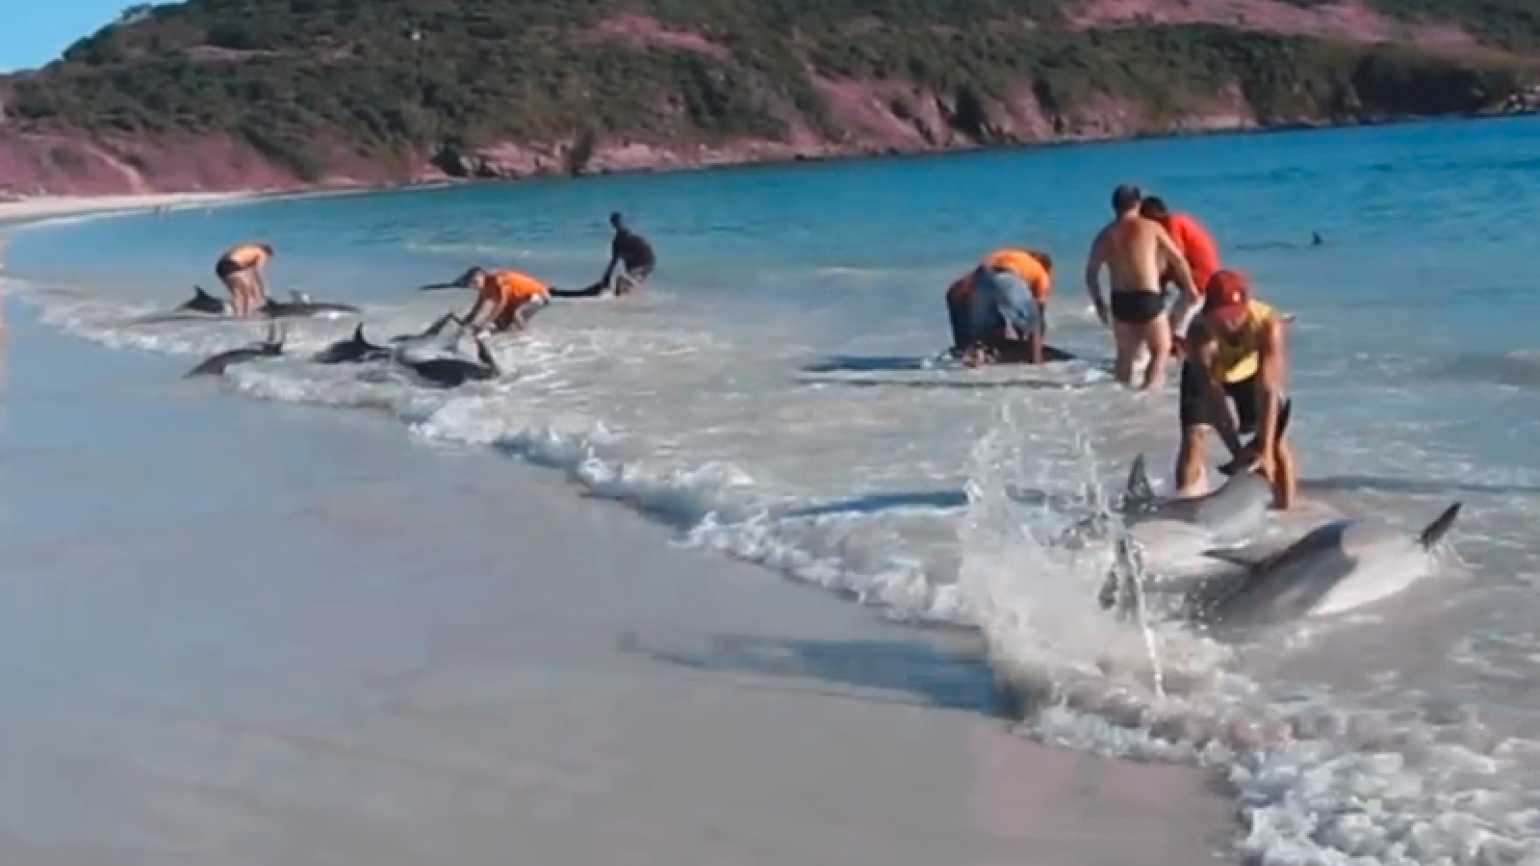 Beachgoers Rescue a Pod of Stranded Dolphins